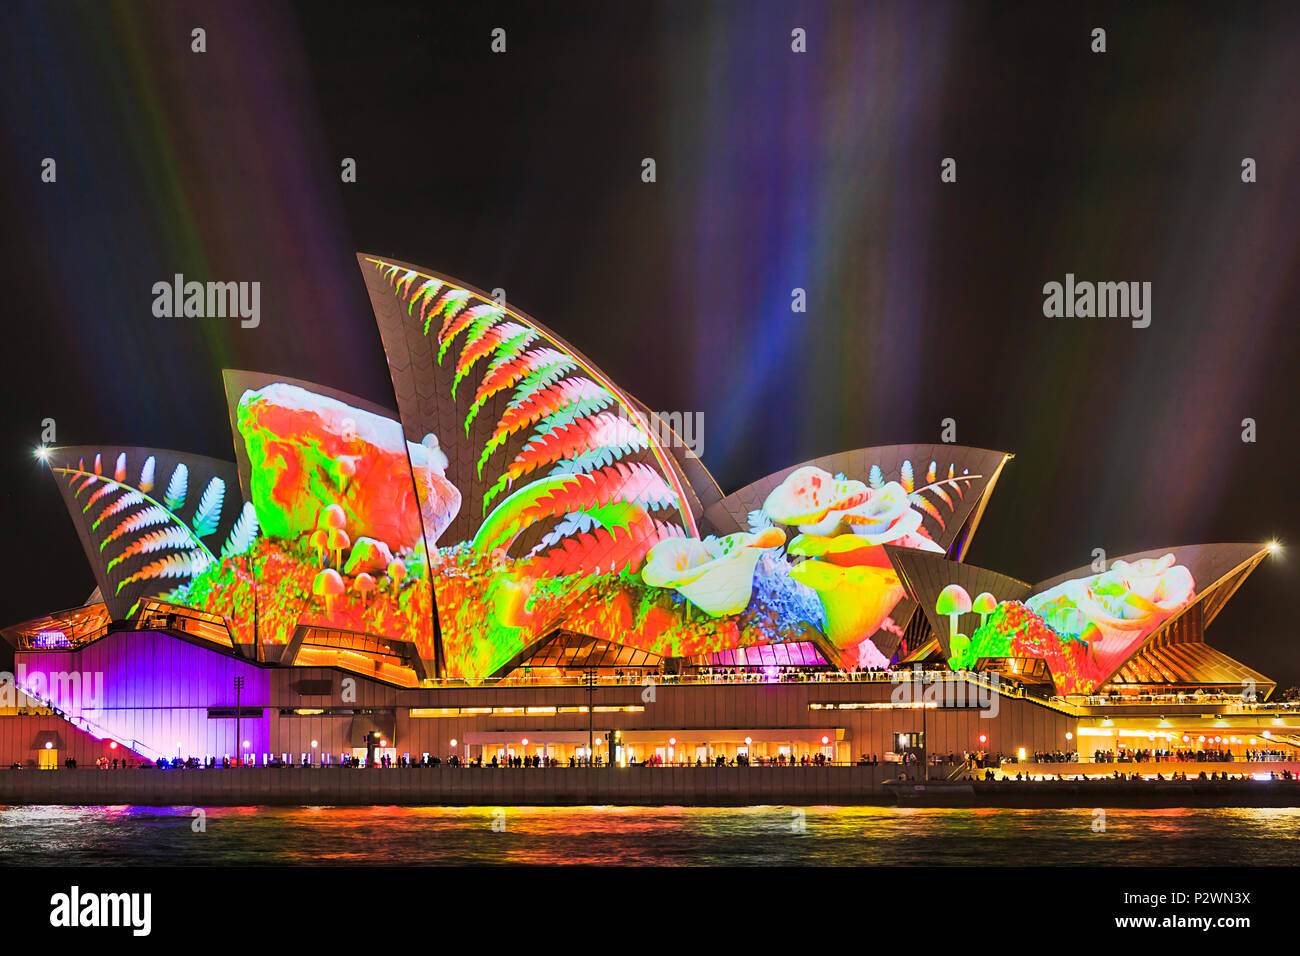 Sydney, Australia - 25 May, 2018: Sydney city landmark of Sydney Opera House at harbour waterfront during annual light show of light and ideas in brig - Stock Image